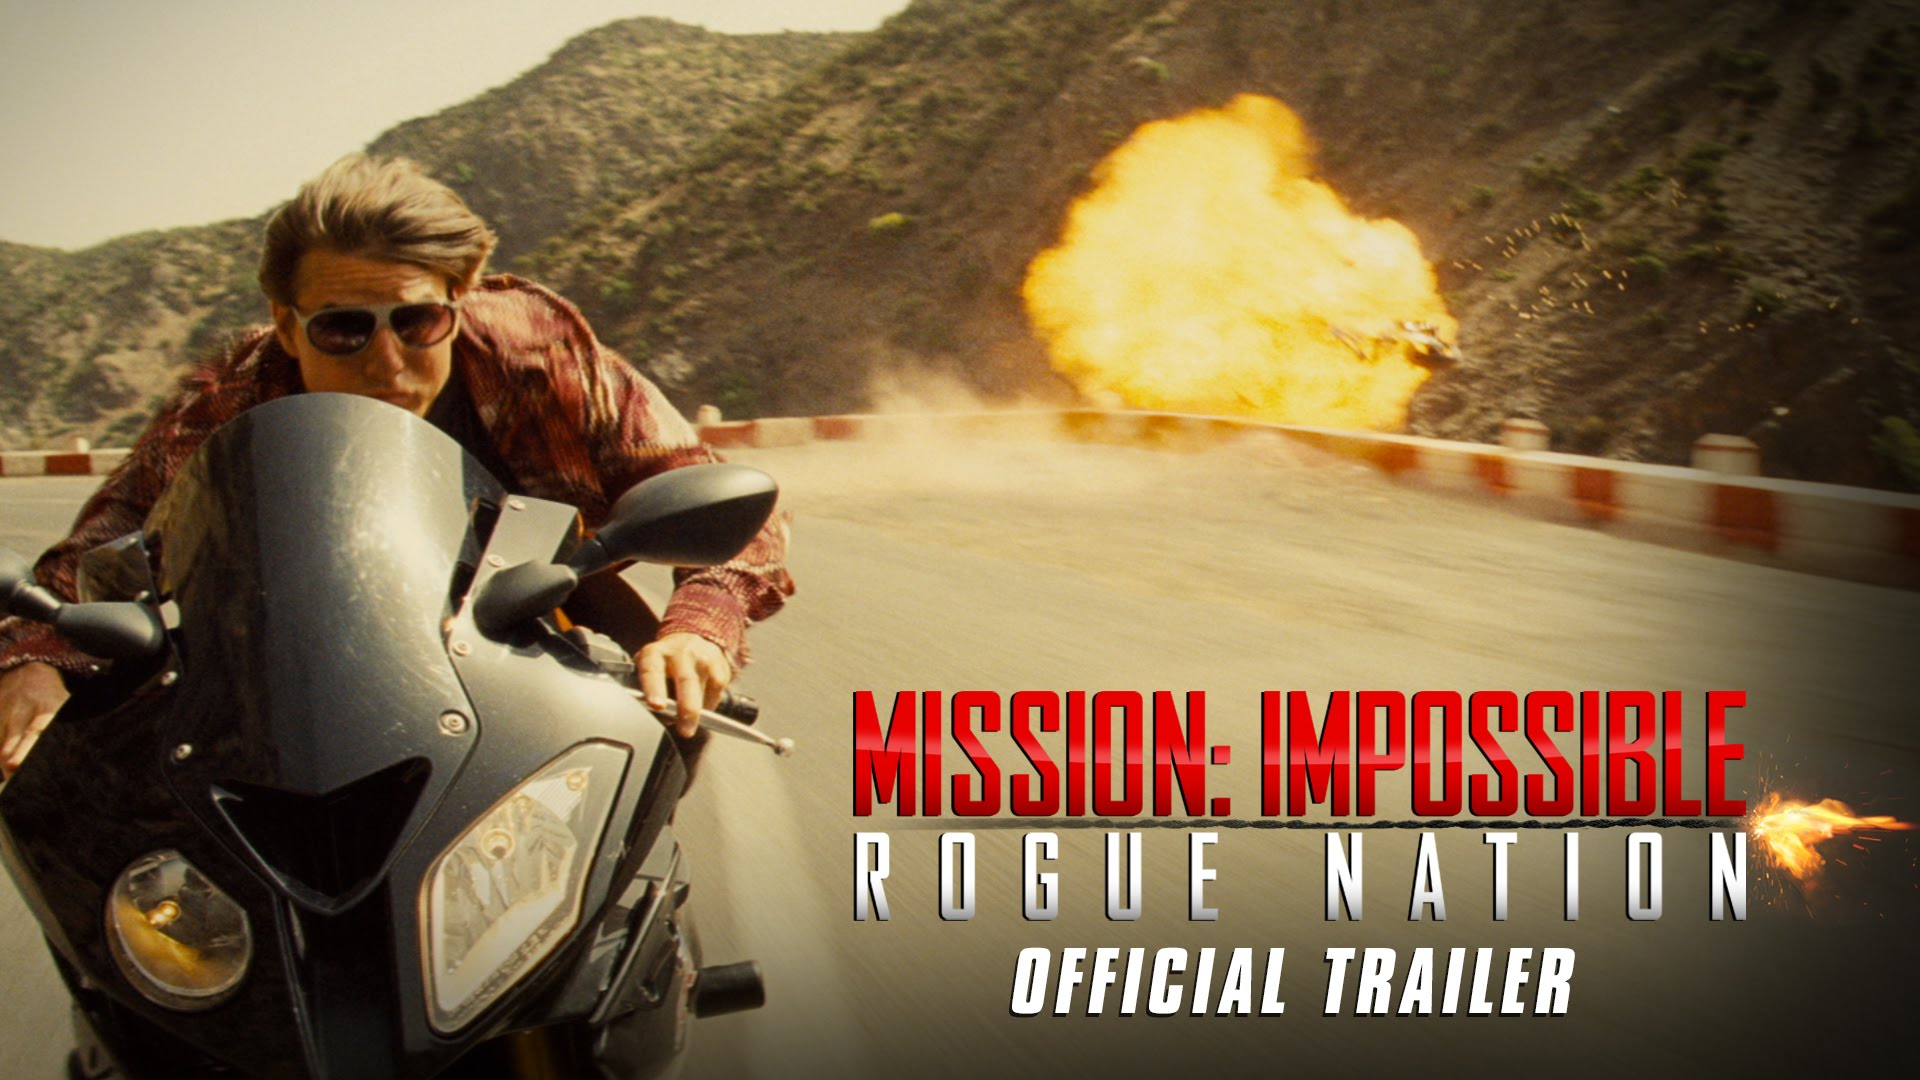 Mission_Impossible_5_1920x1080_Fond_Ecran.jpg